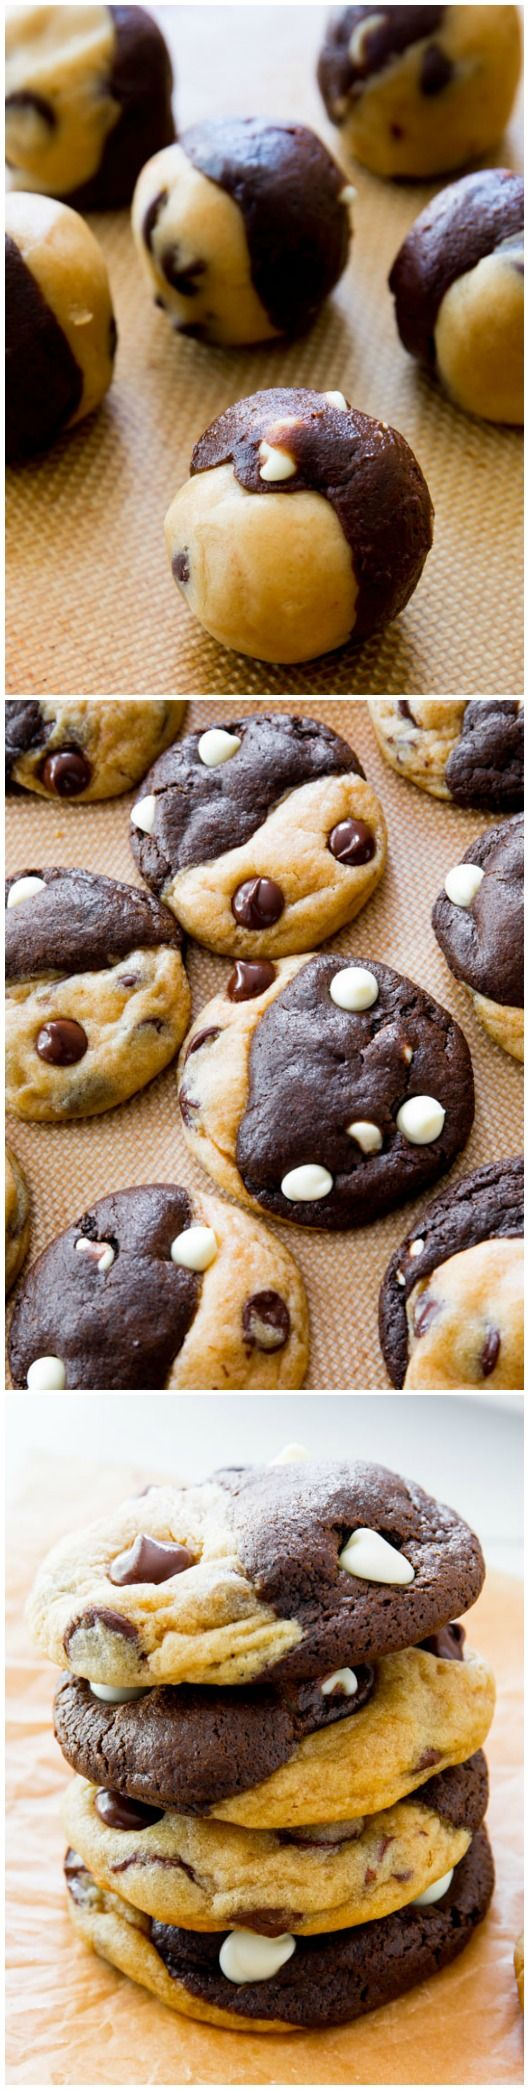 Double chocolate chip swirl cookies